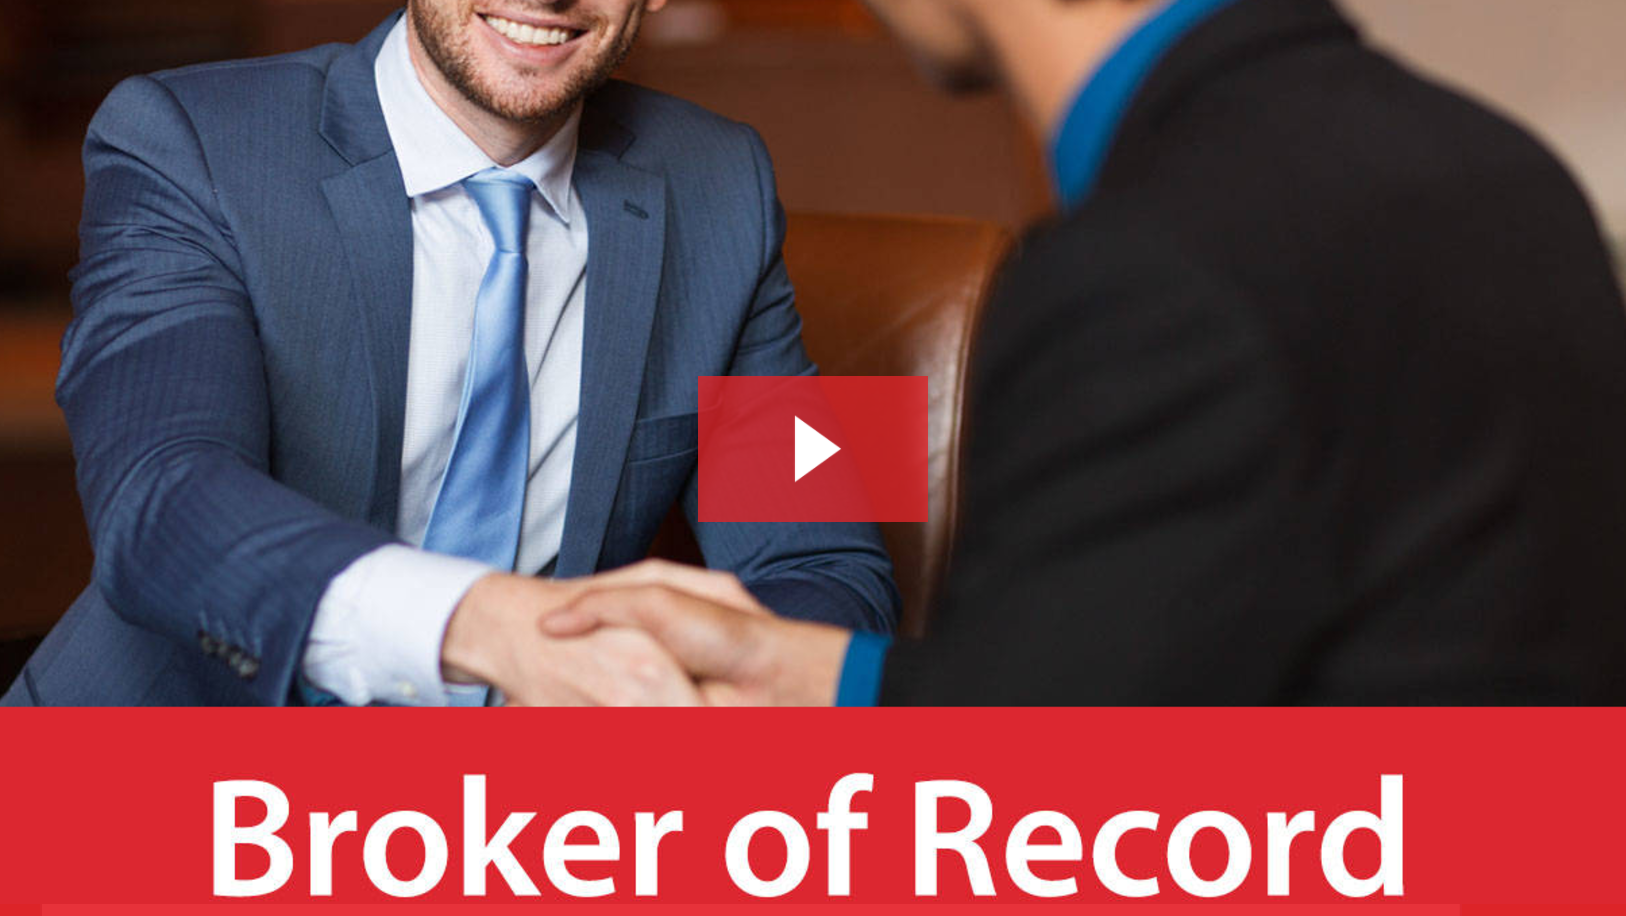 Broker of Record